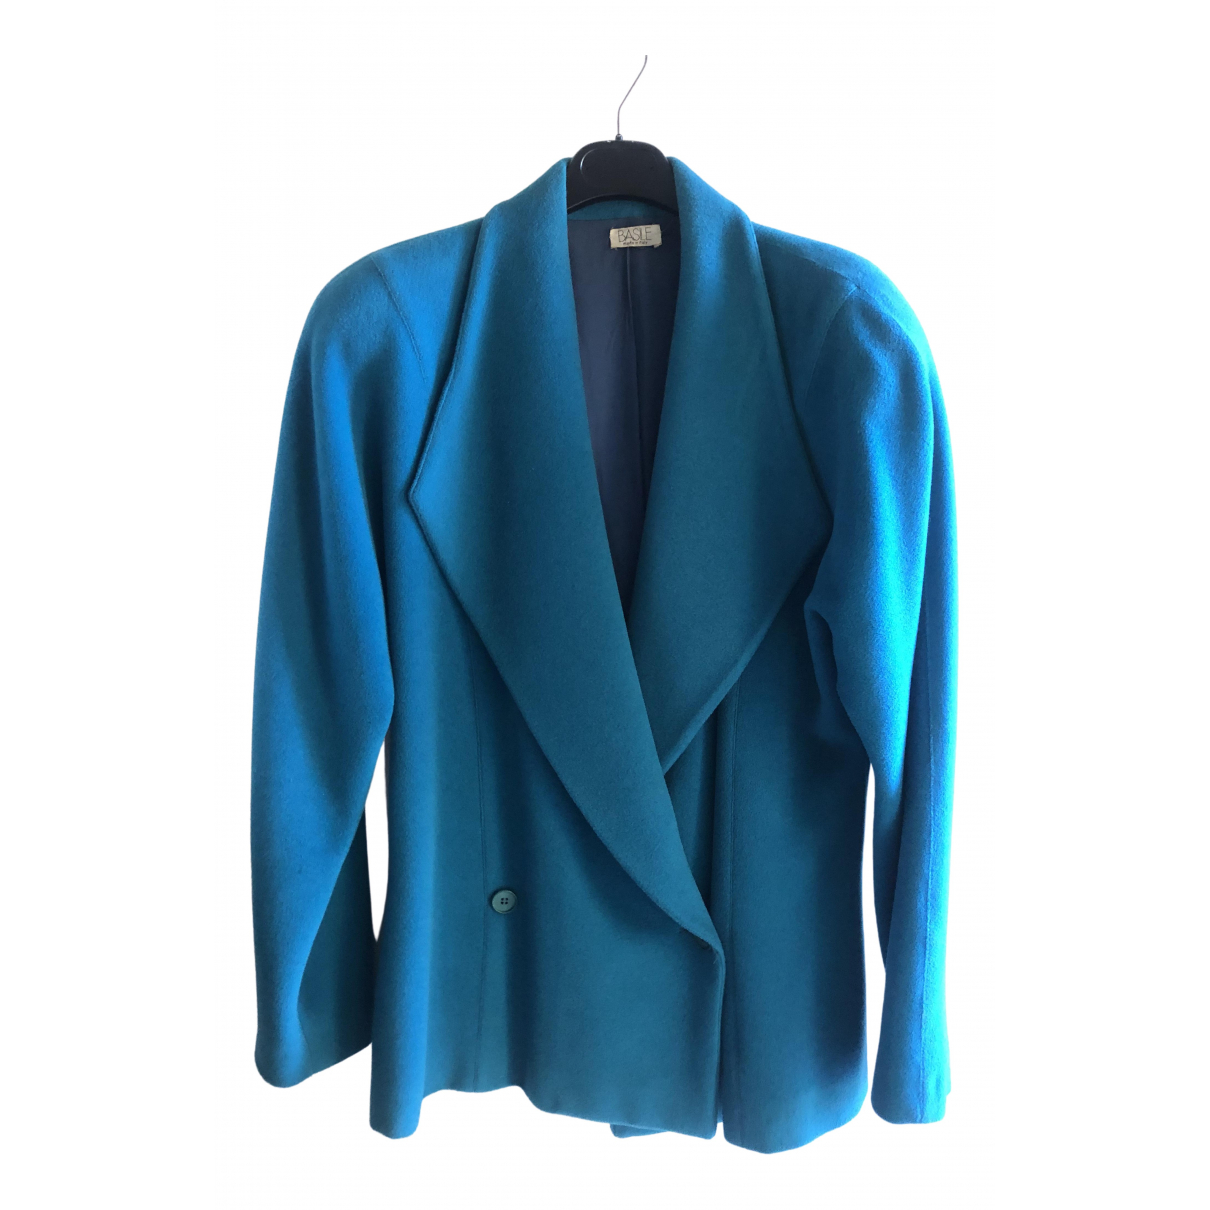 Basile \N Turquoise Wool jacket for Women One Size IT